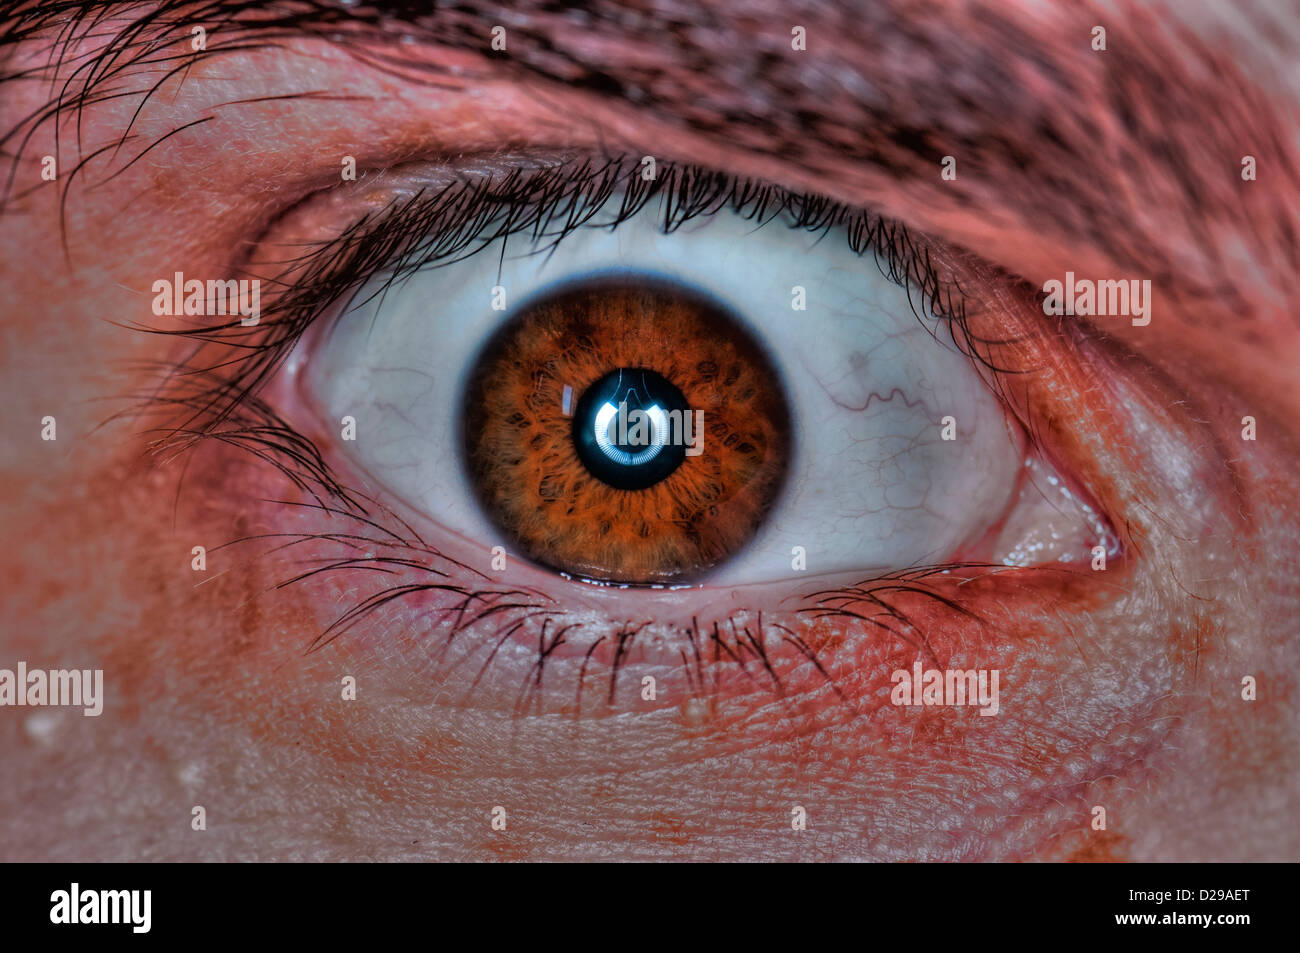 Extreme closeup of a human eye- Brown - Stock Image